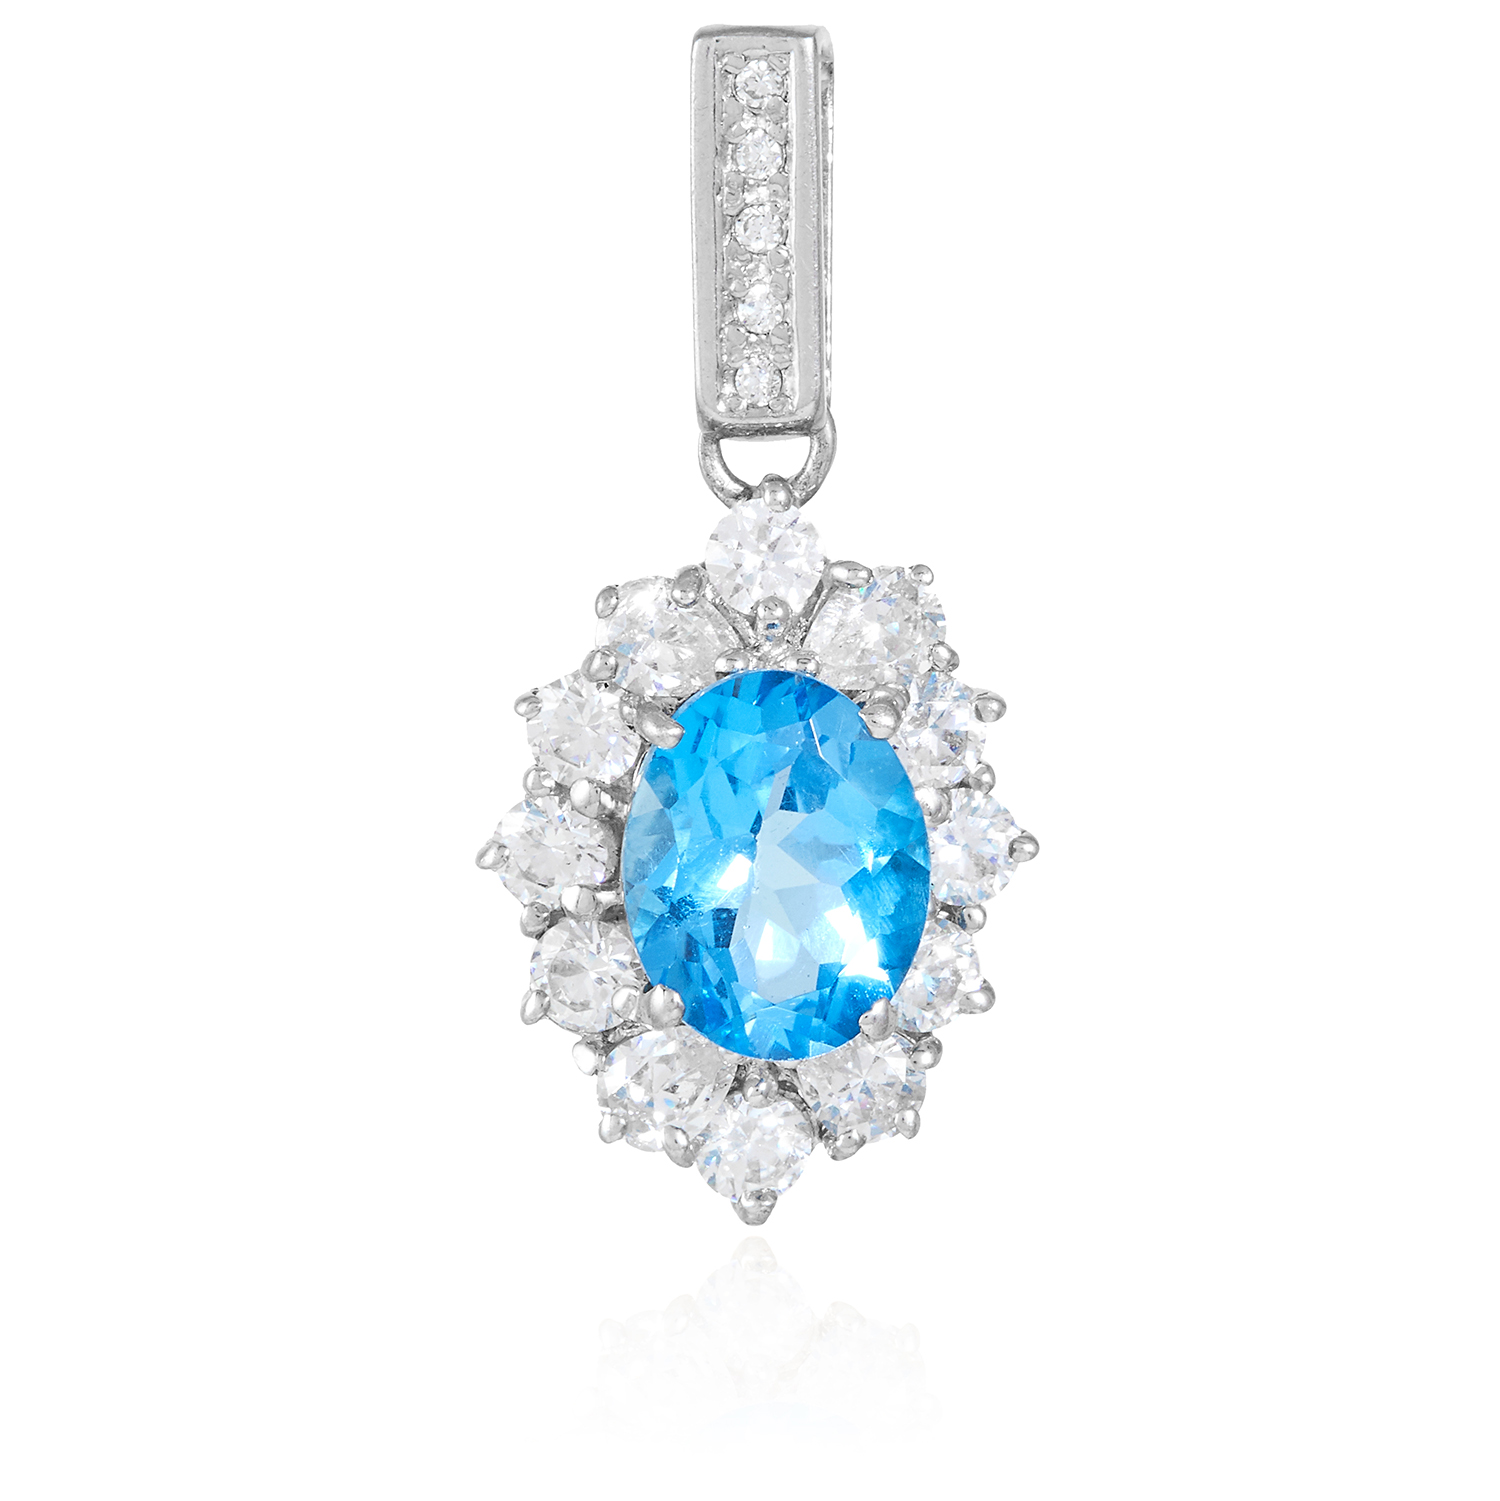 A TOPAZ AND CUBIC ZIRCONIA PENDANT in silver, set with an oval cut topaz in a border of round cut